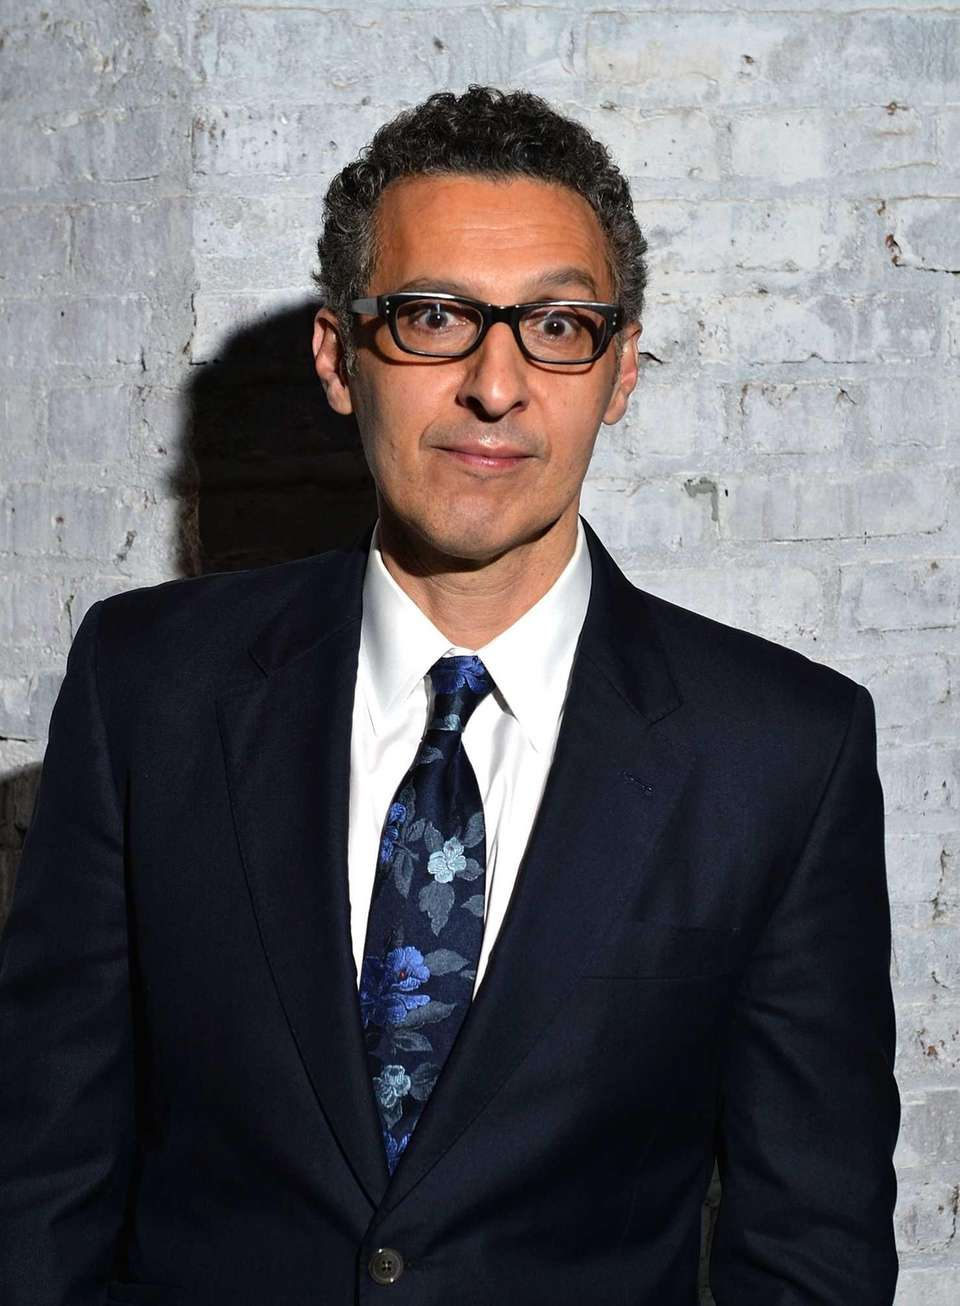 Actor-director John Turturro grew up in Rosedale.